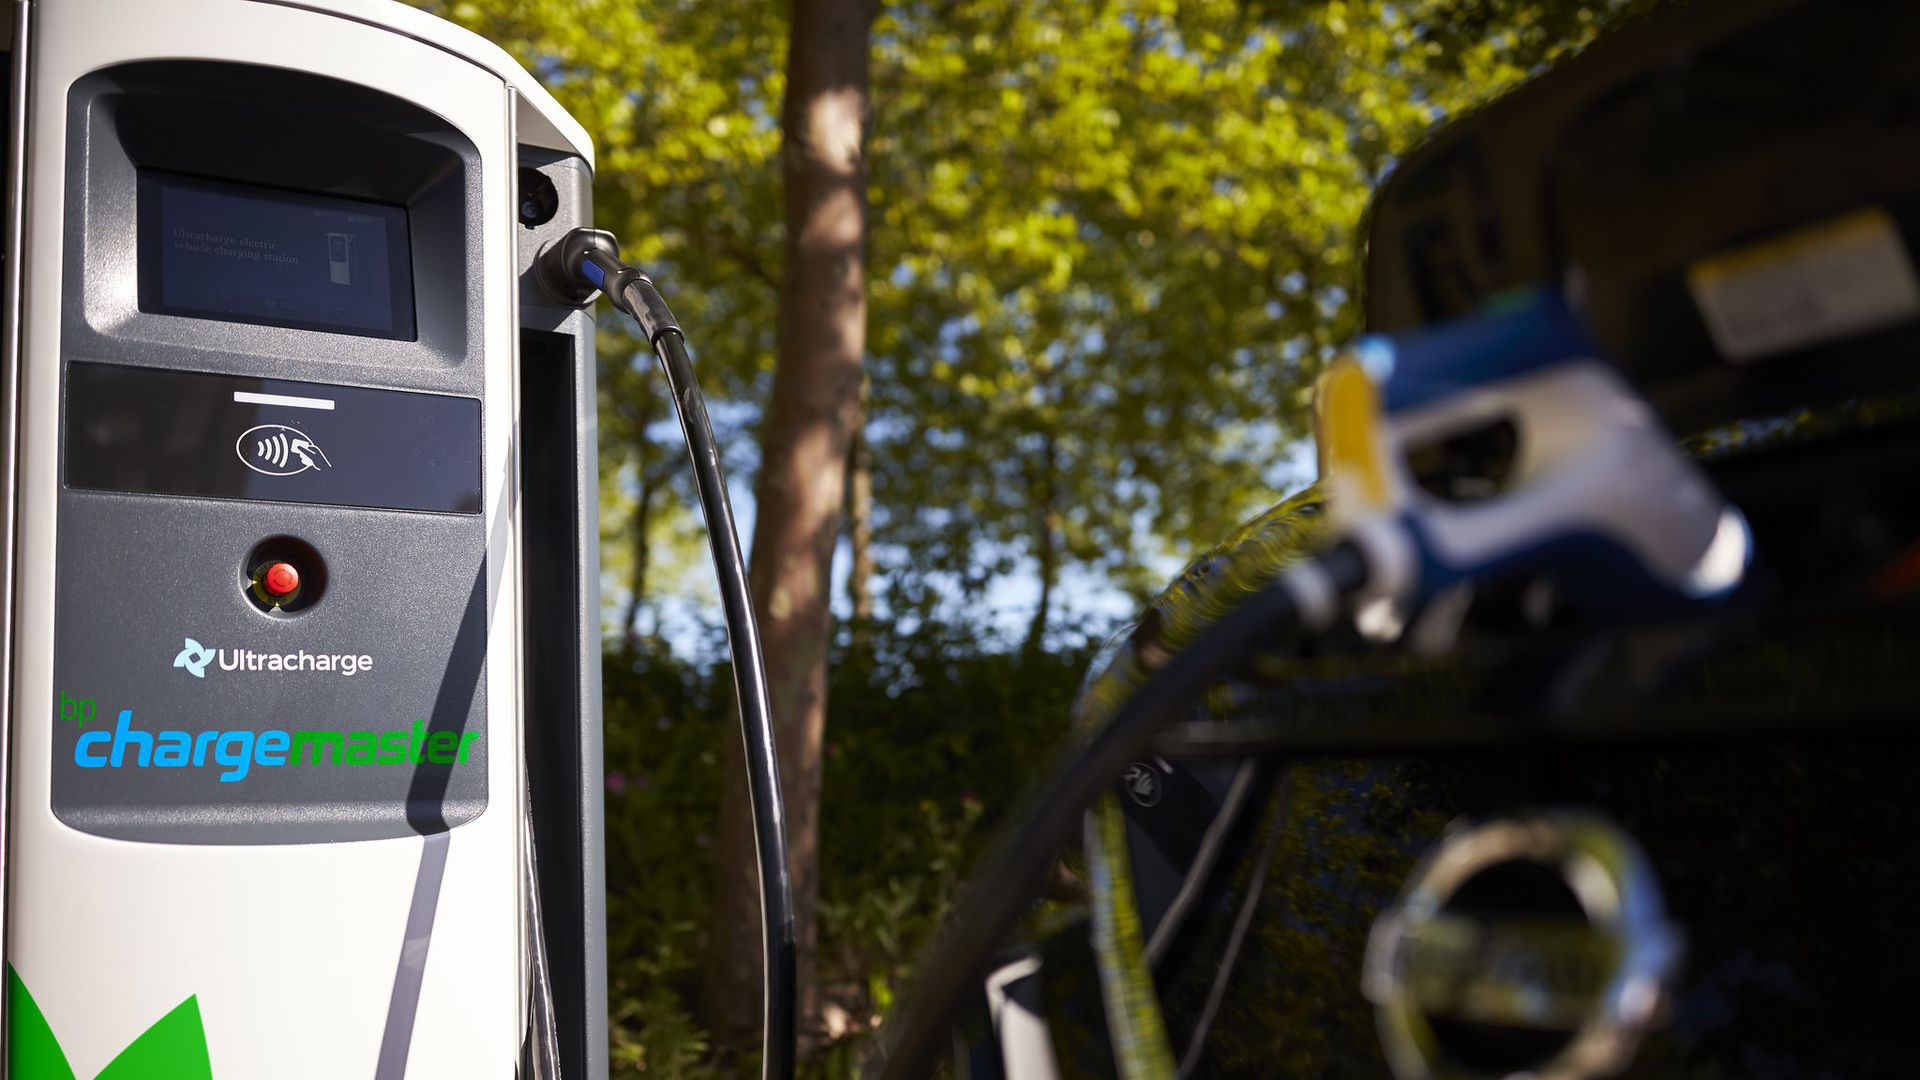 A BP charging station for electric vehicles